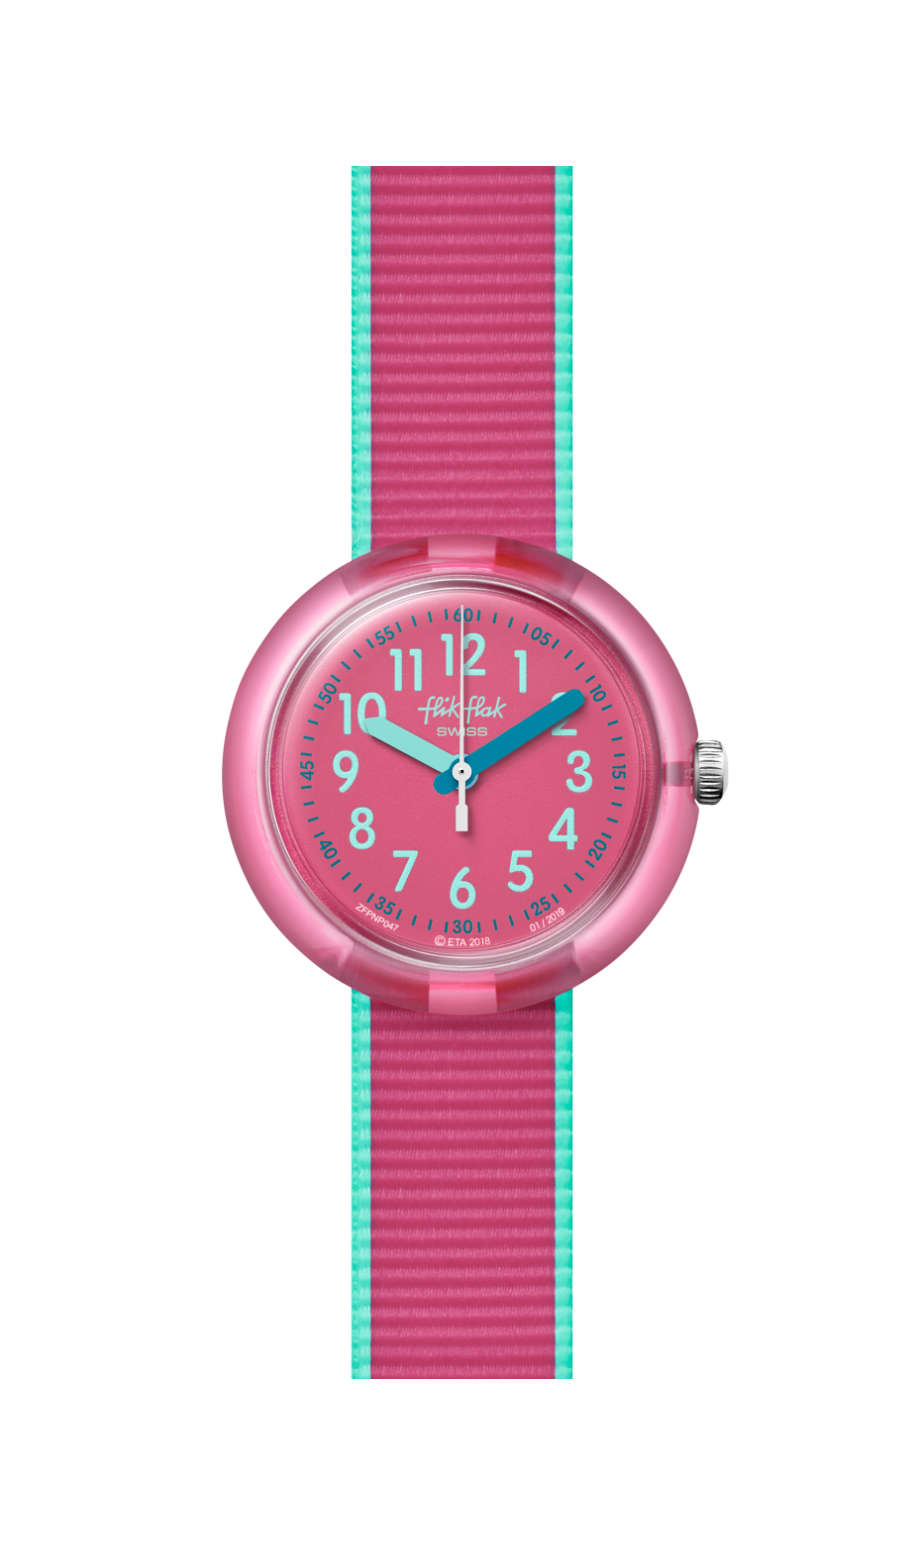 Swatch - COLOR BLAST PINK - 1